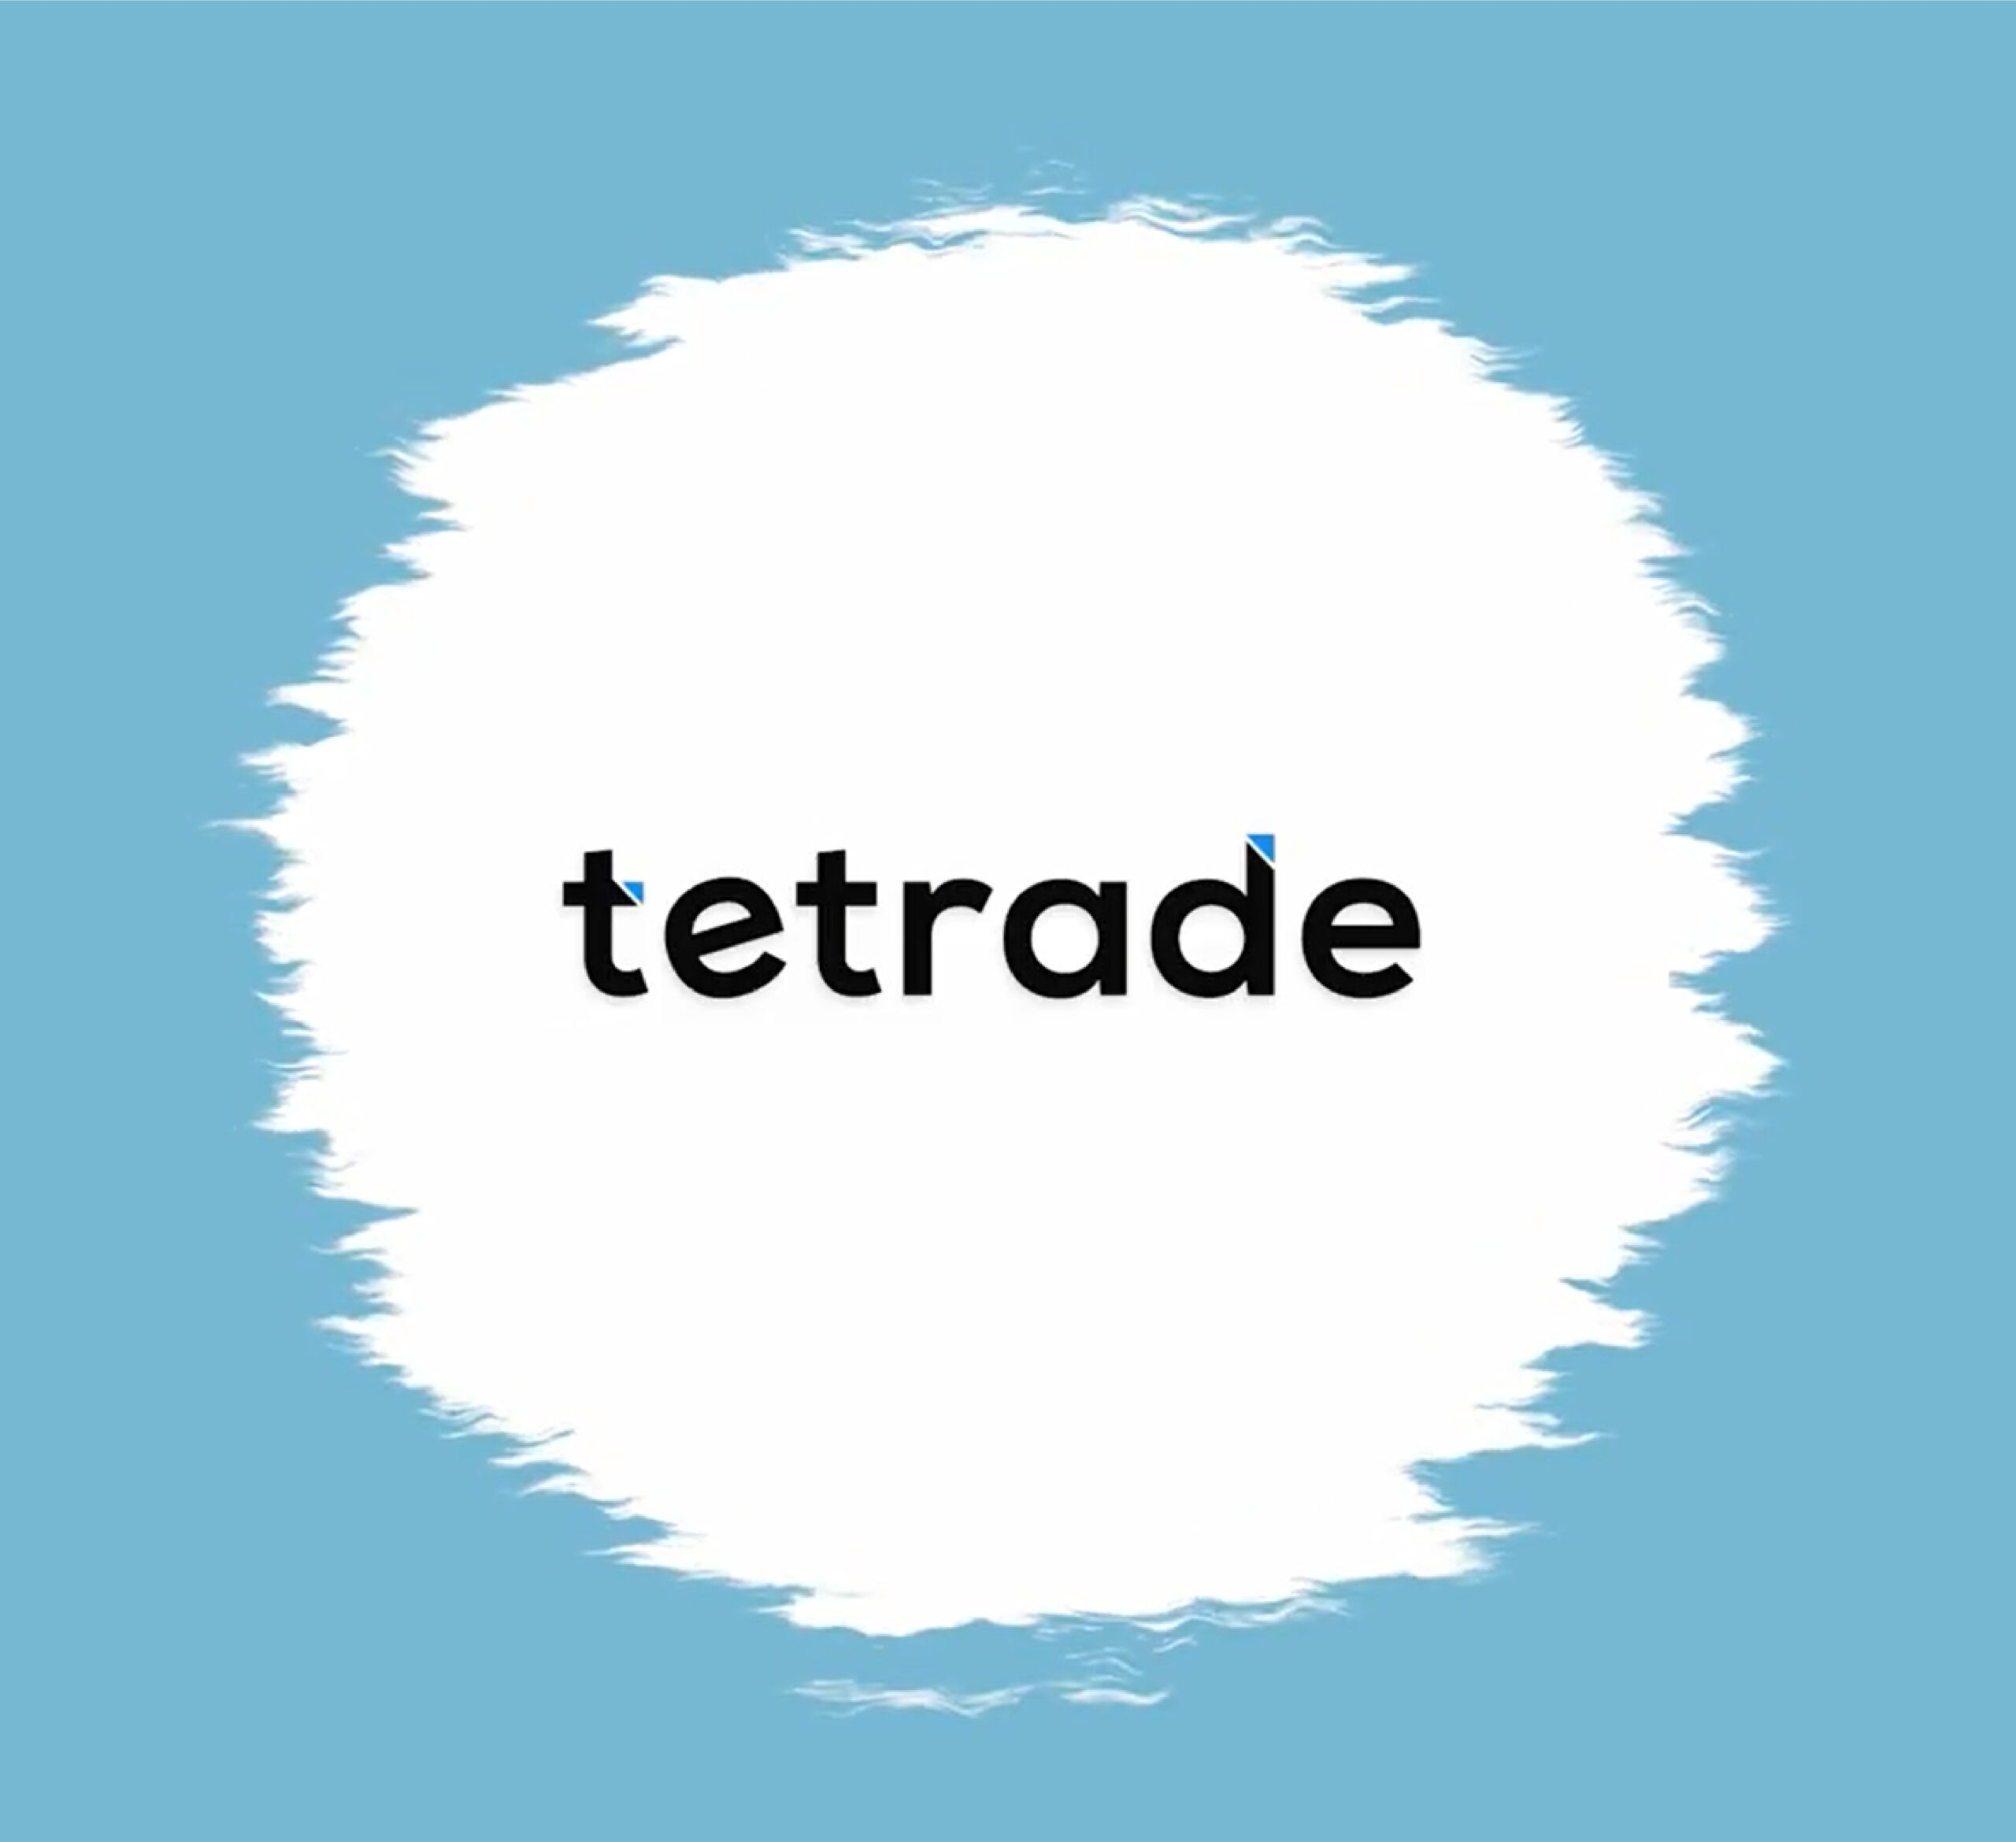 Introducing Tetrade - Nybble's e-commerce venture